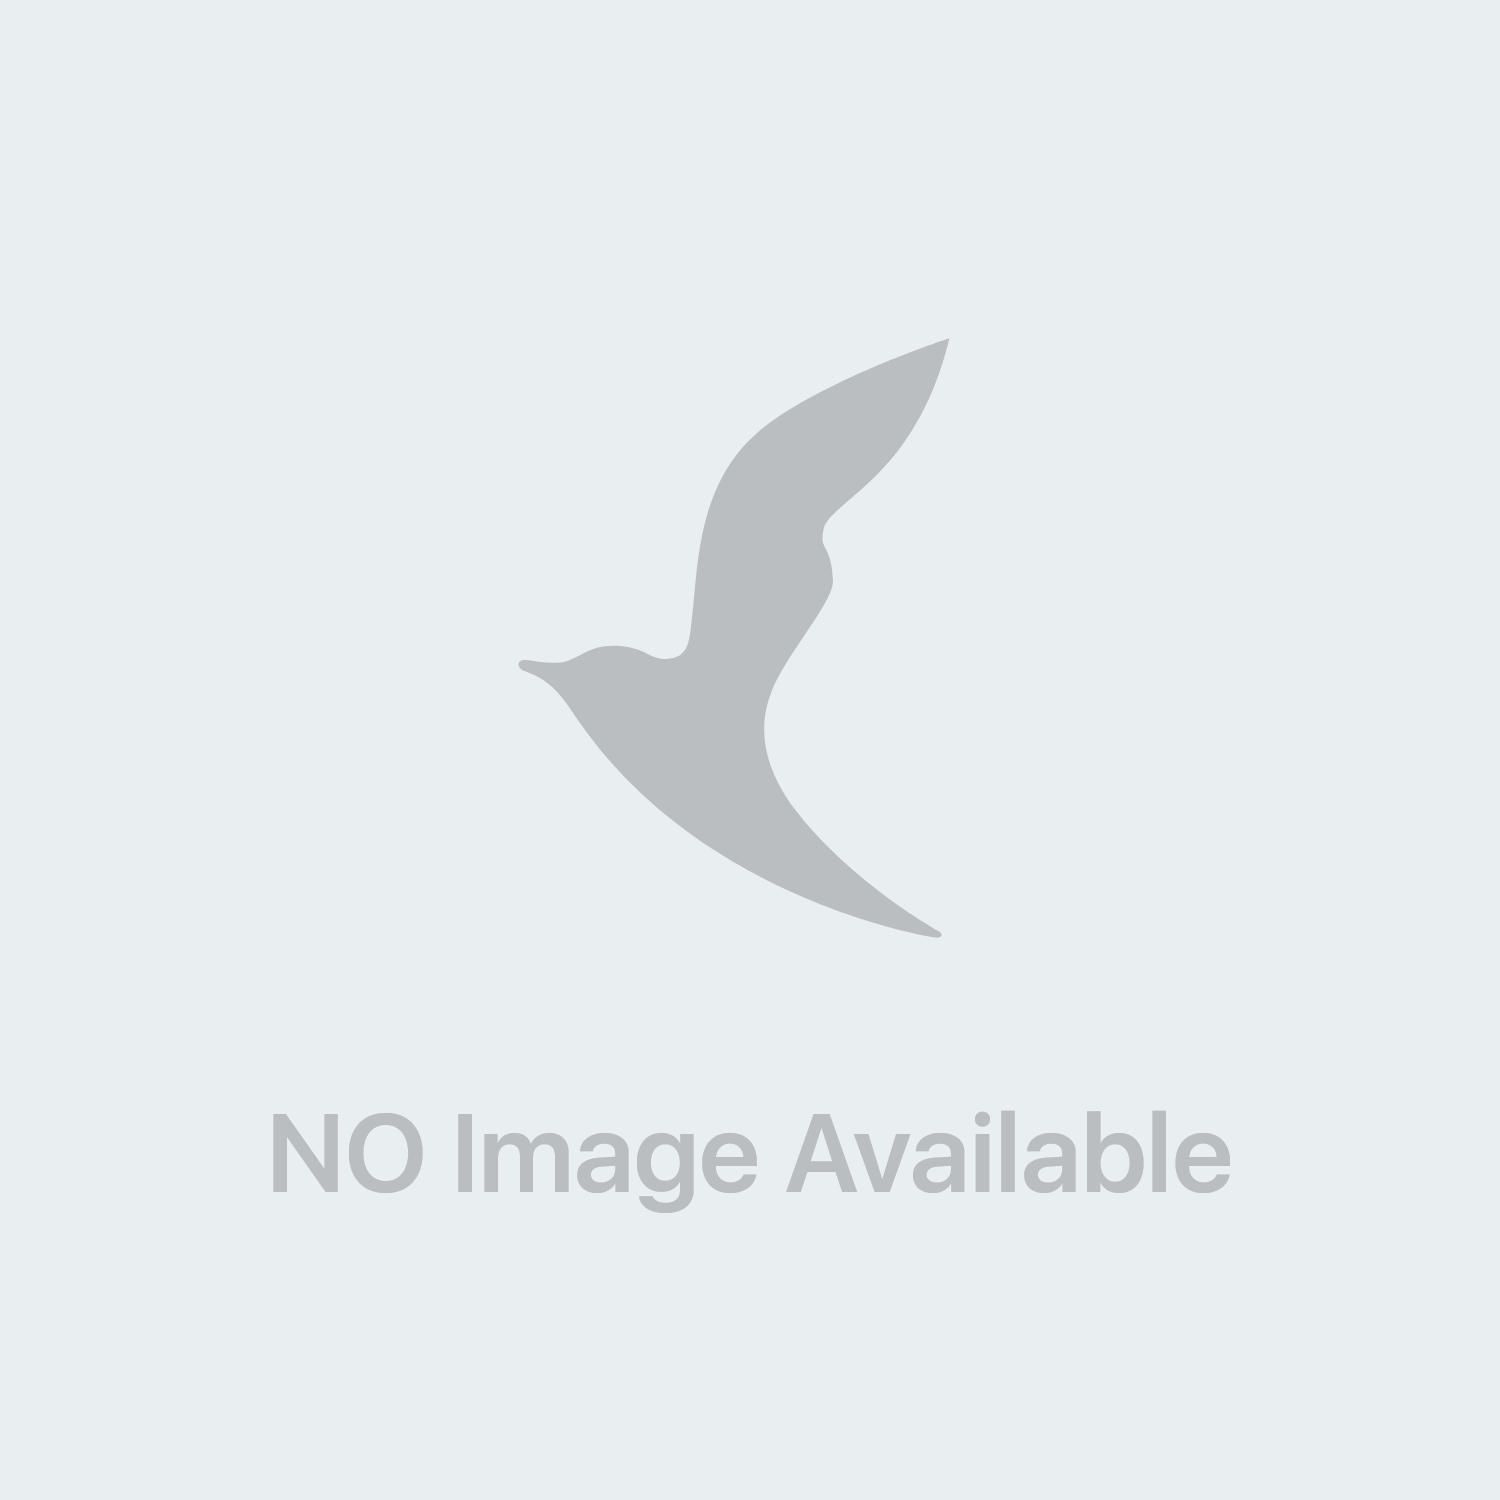 Bioscalin Nutri Color 3 Castano Scuro Trattamento Colorante